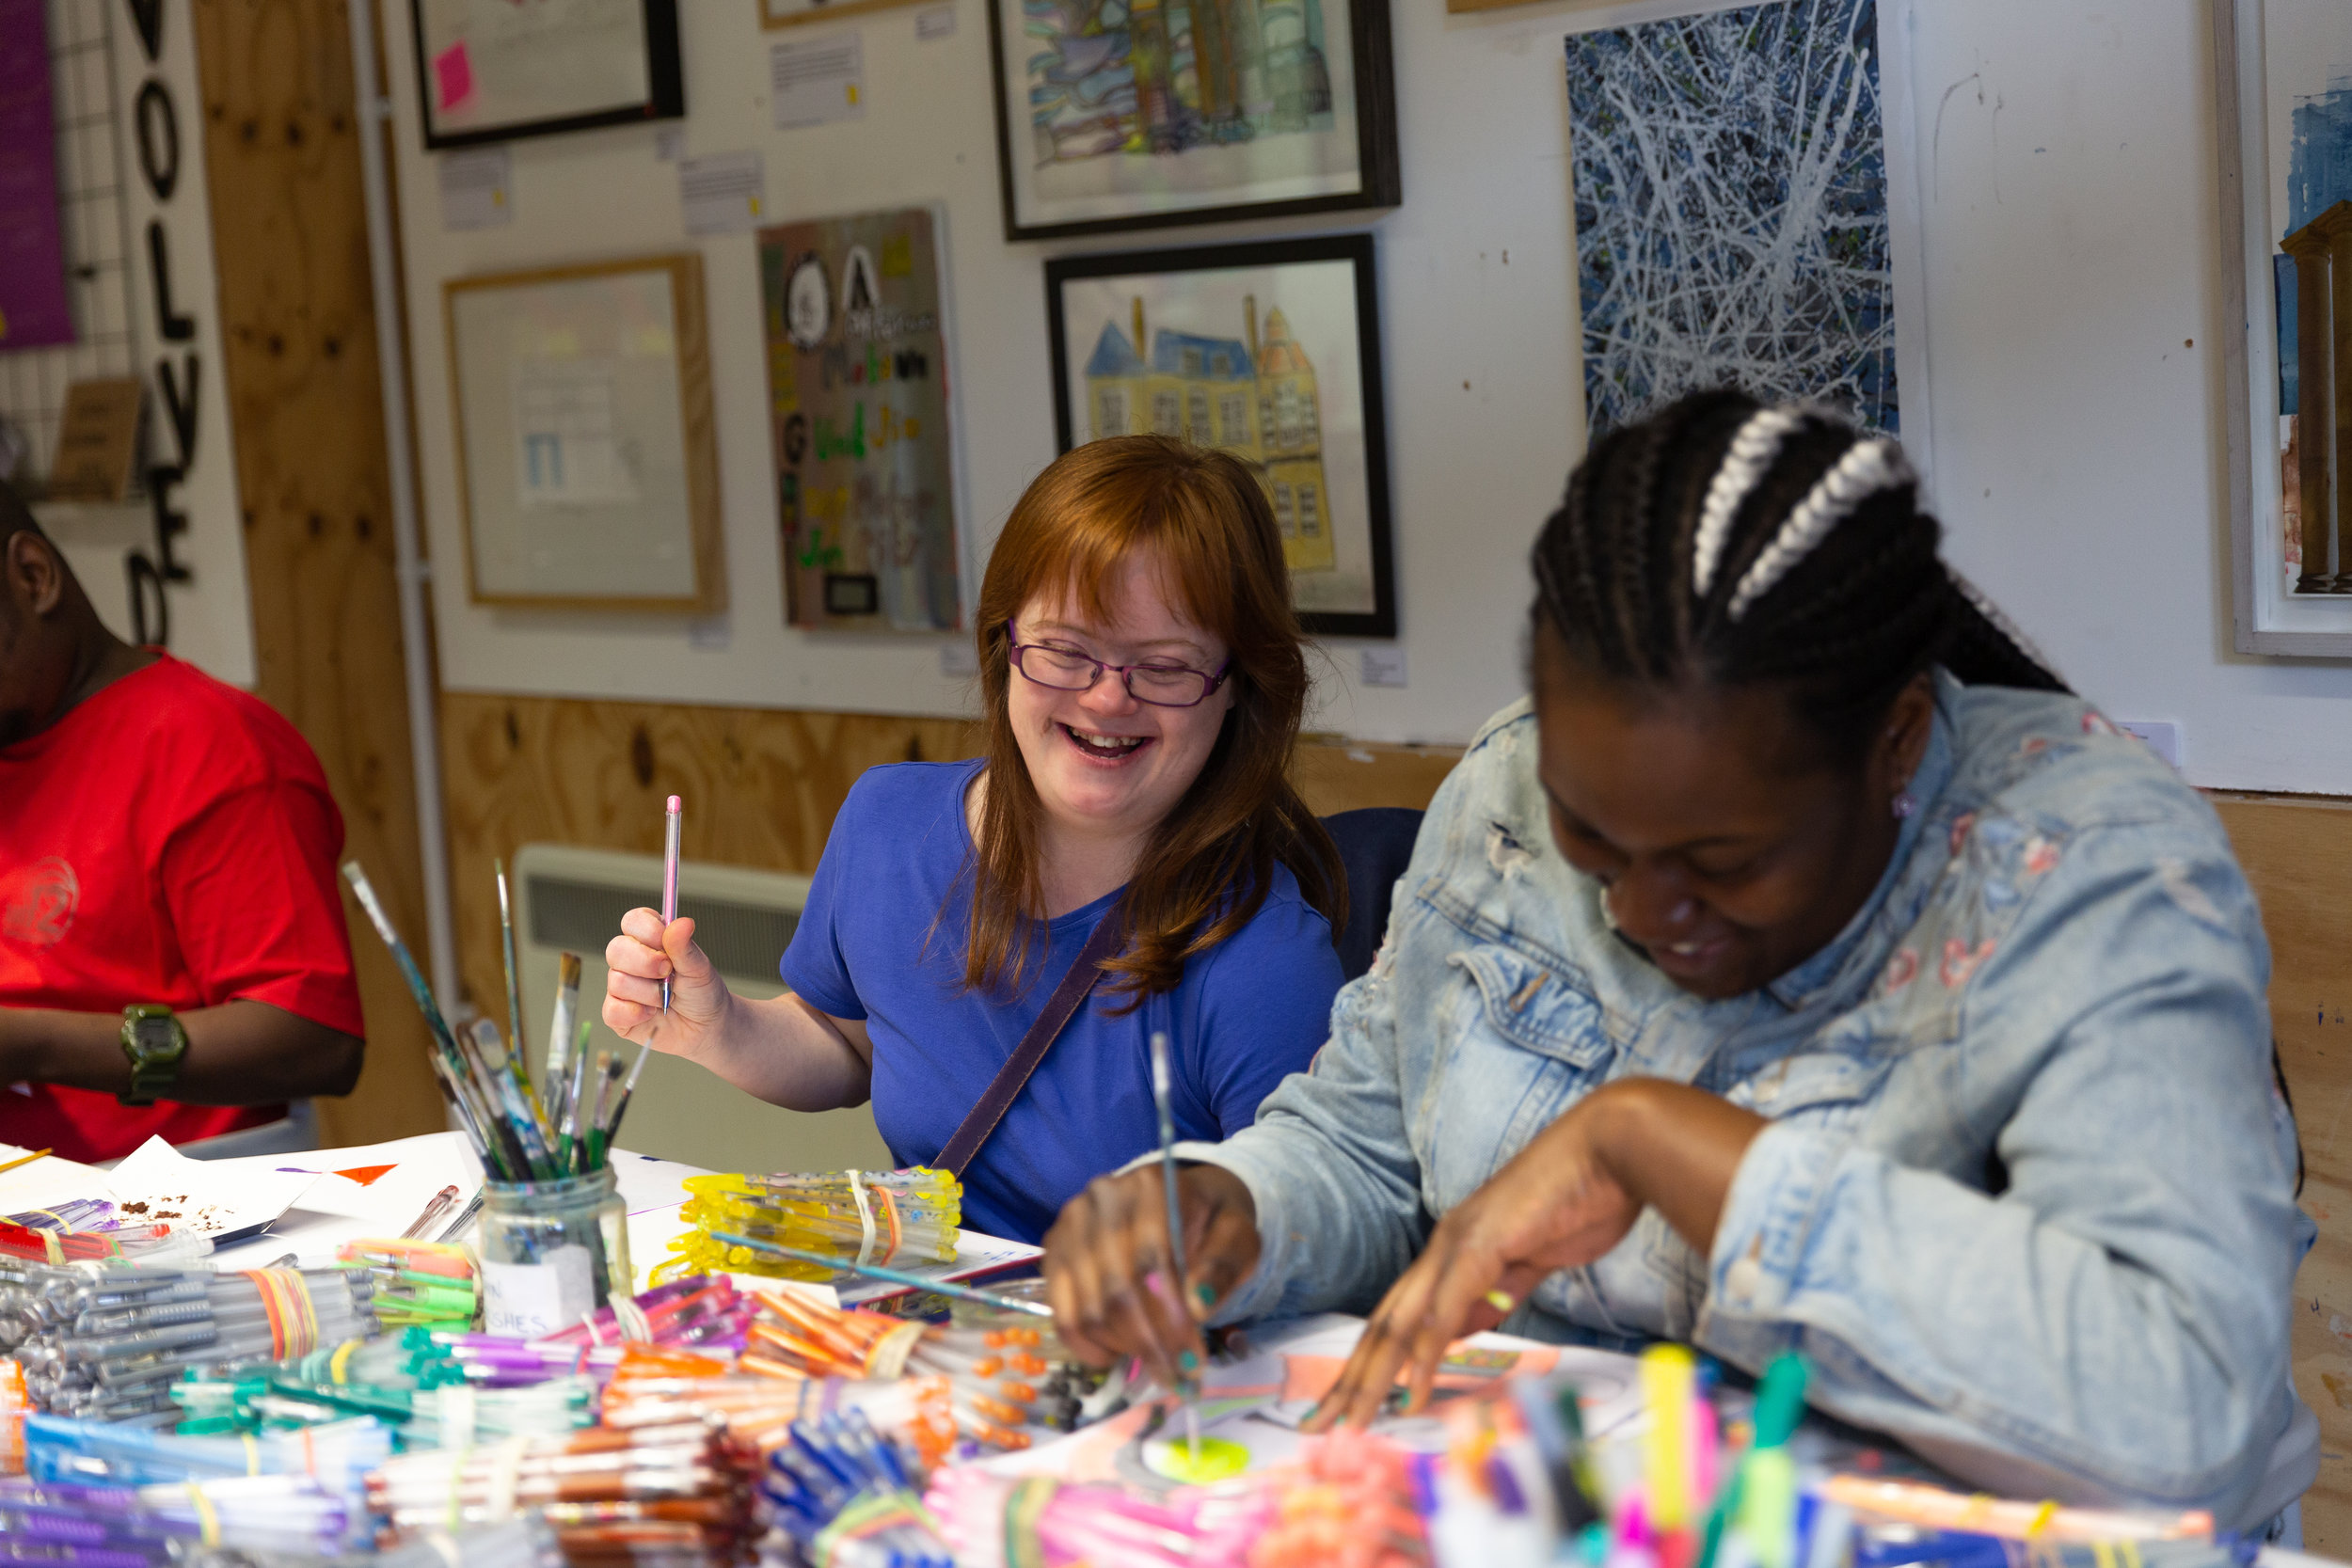 Toyin and Lucy working with gel pens. Photo courtesy of Catarina Rodrigues, who was taking photos for City Bridge Trust, our biggest funder.